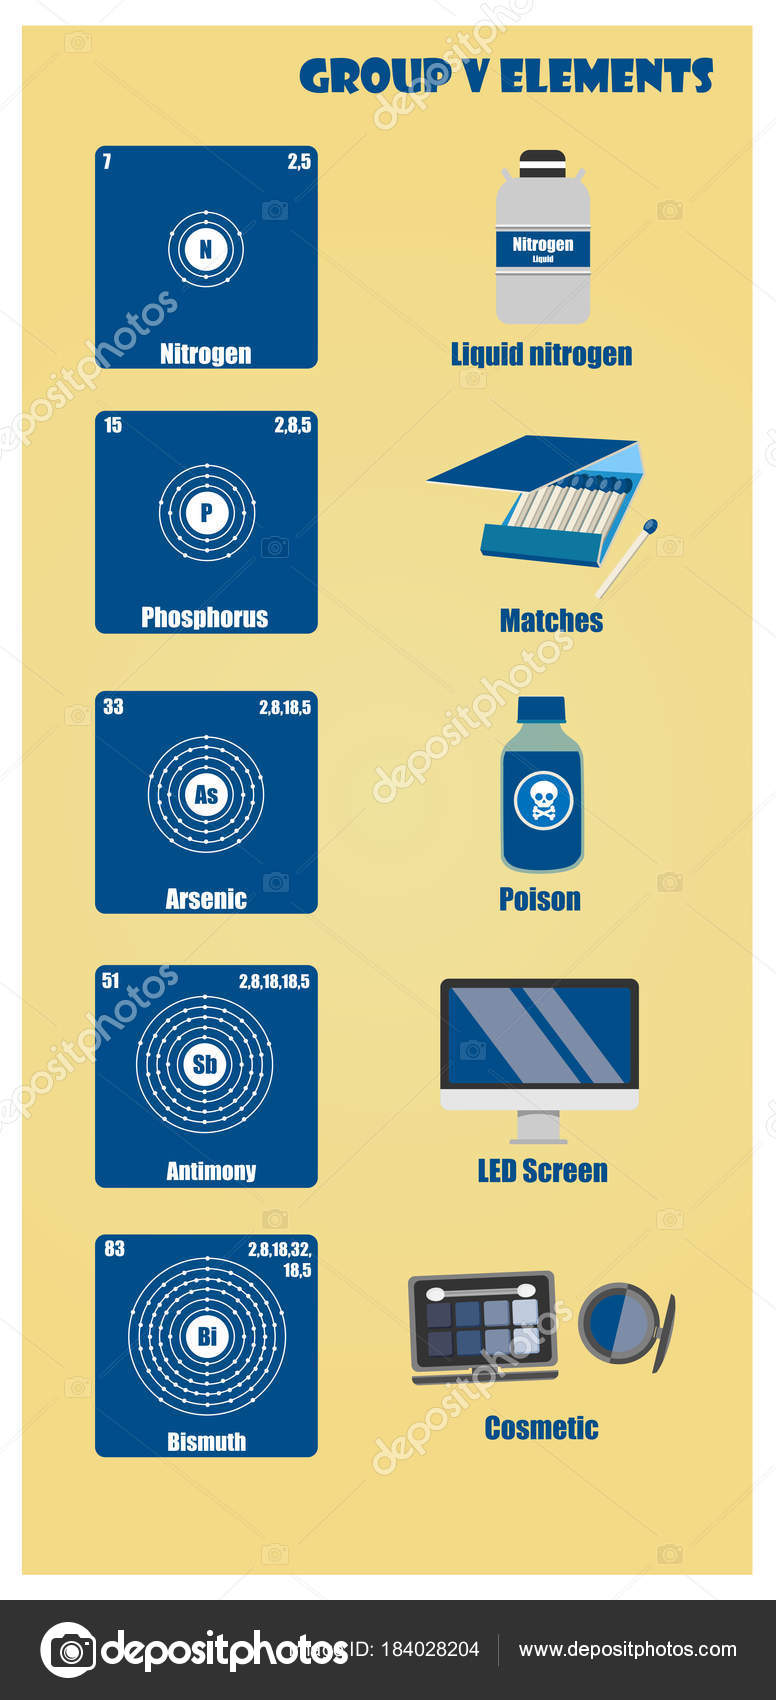 Periodic table of element group v stock vector pui2motifail periodic table of element group v stock vector urtaz Gallery